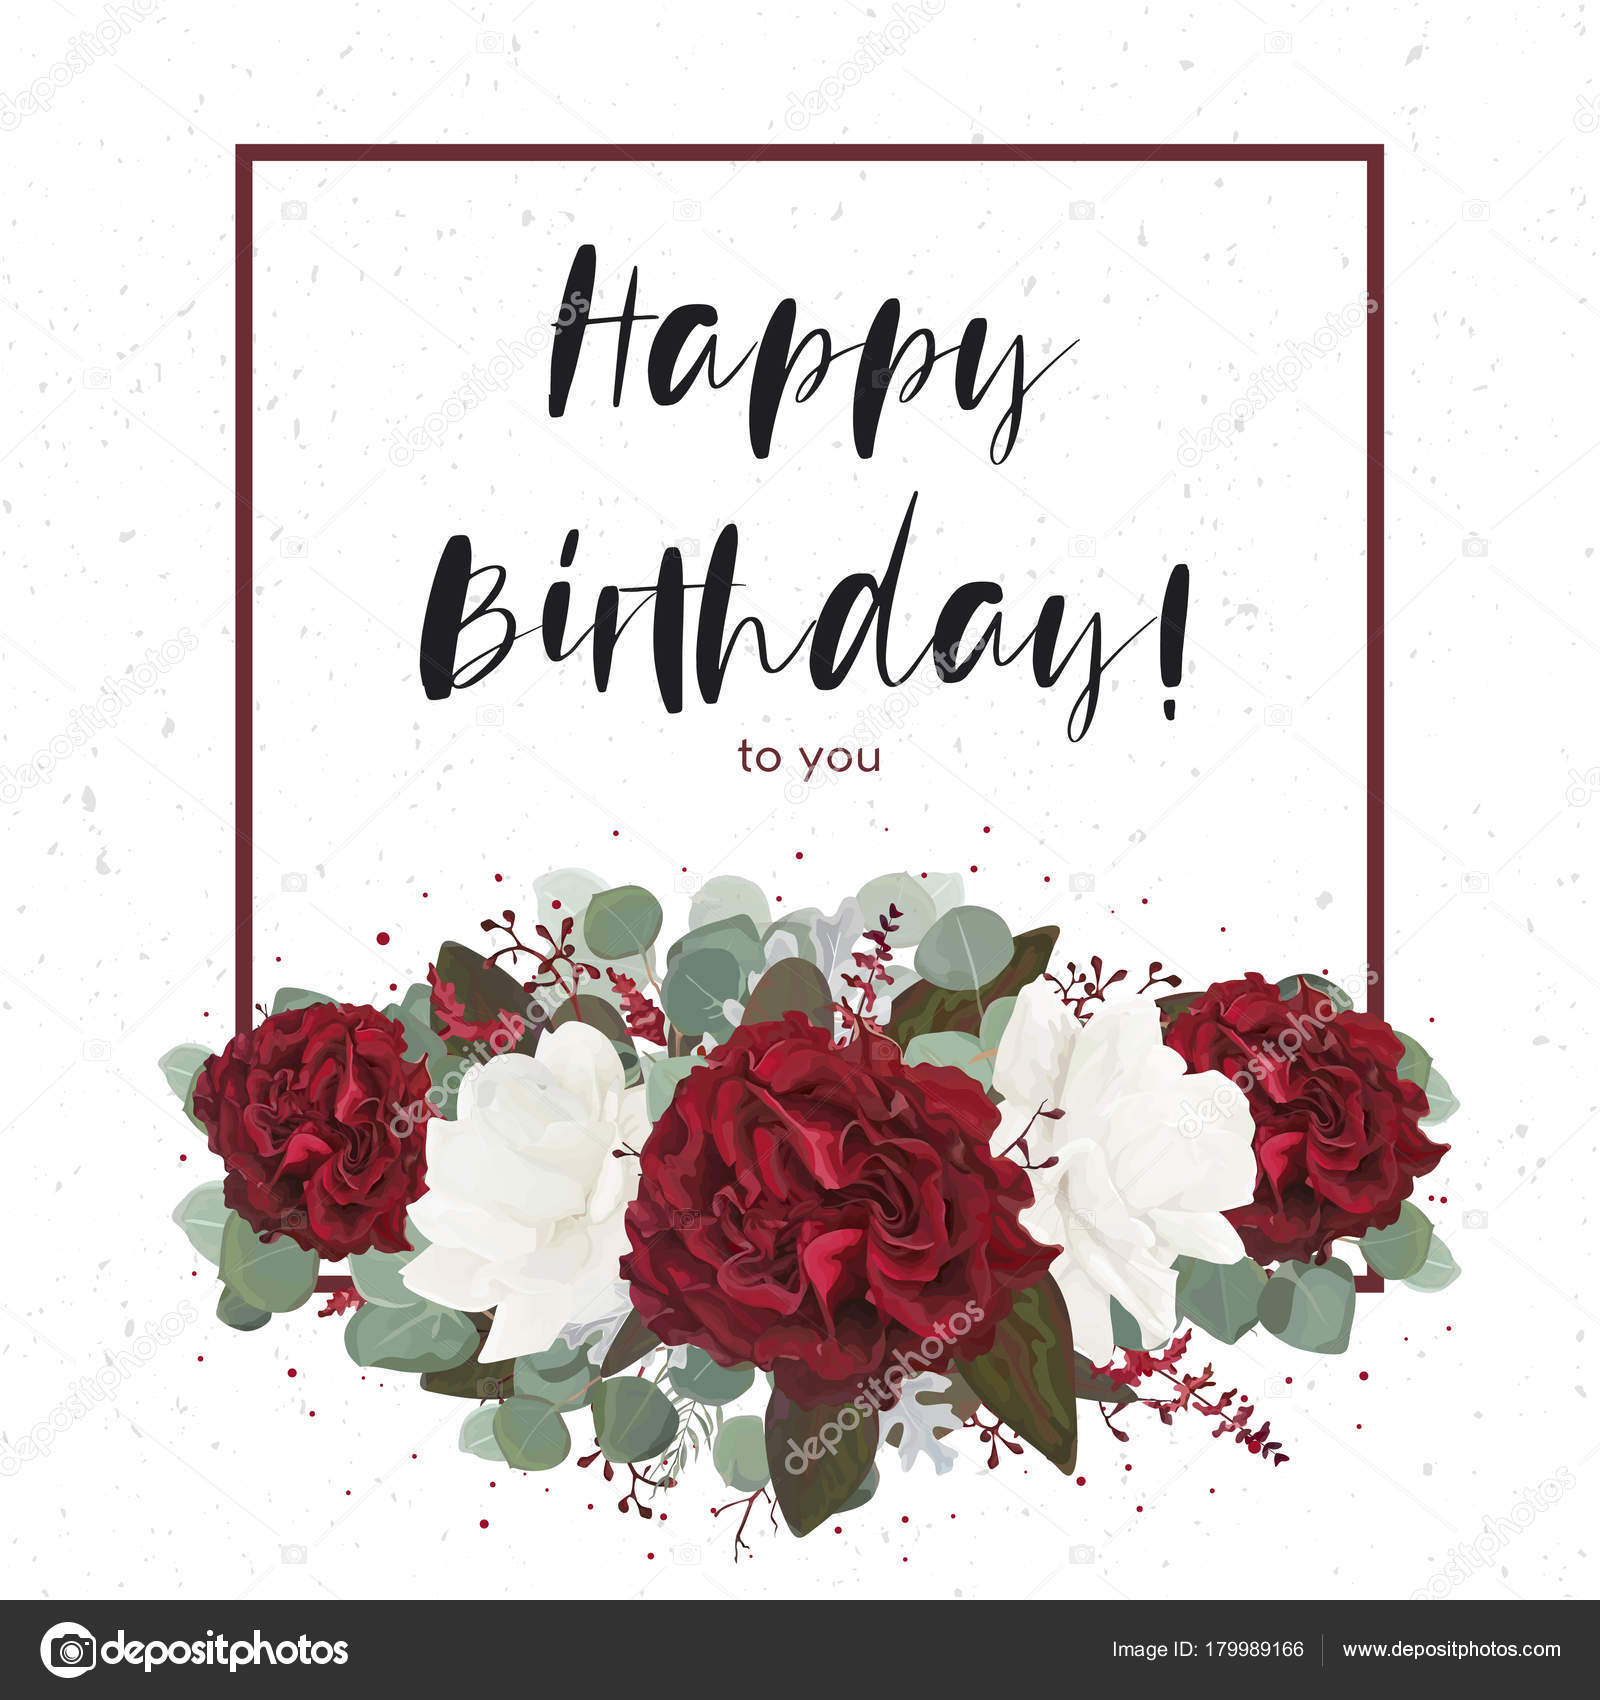 Floral Happy Birthday Greeting Gift Card Design With Vector Watercolor Bouquet Decorative Frame Garden Red Burgundy Rose Flowers